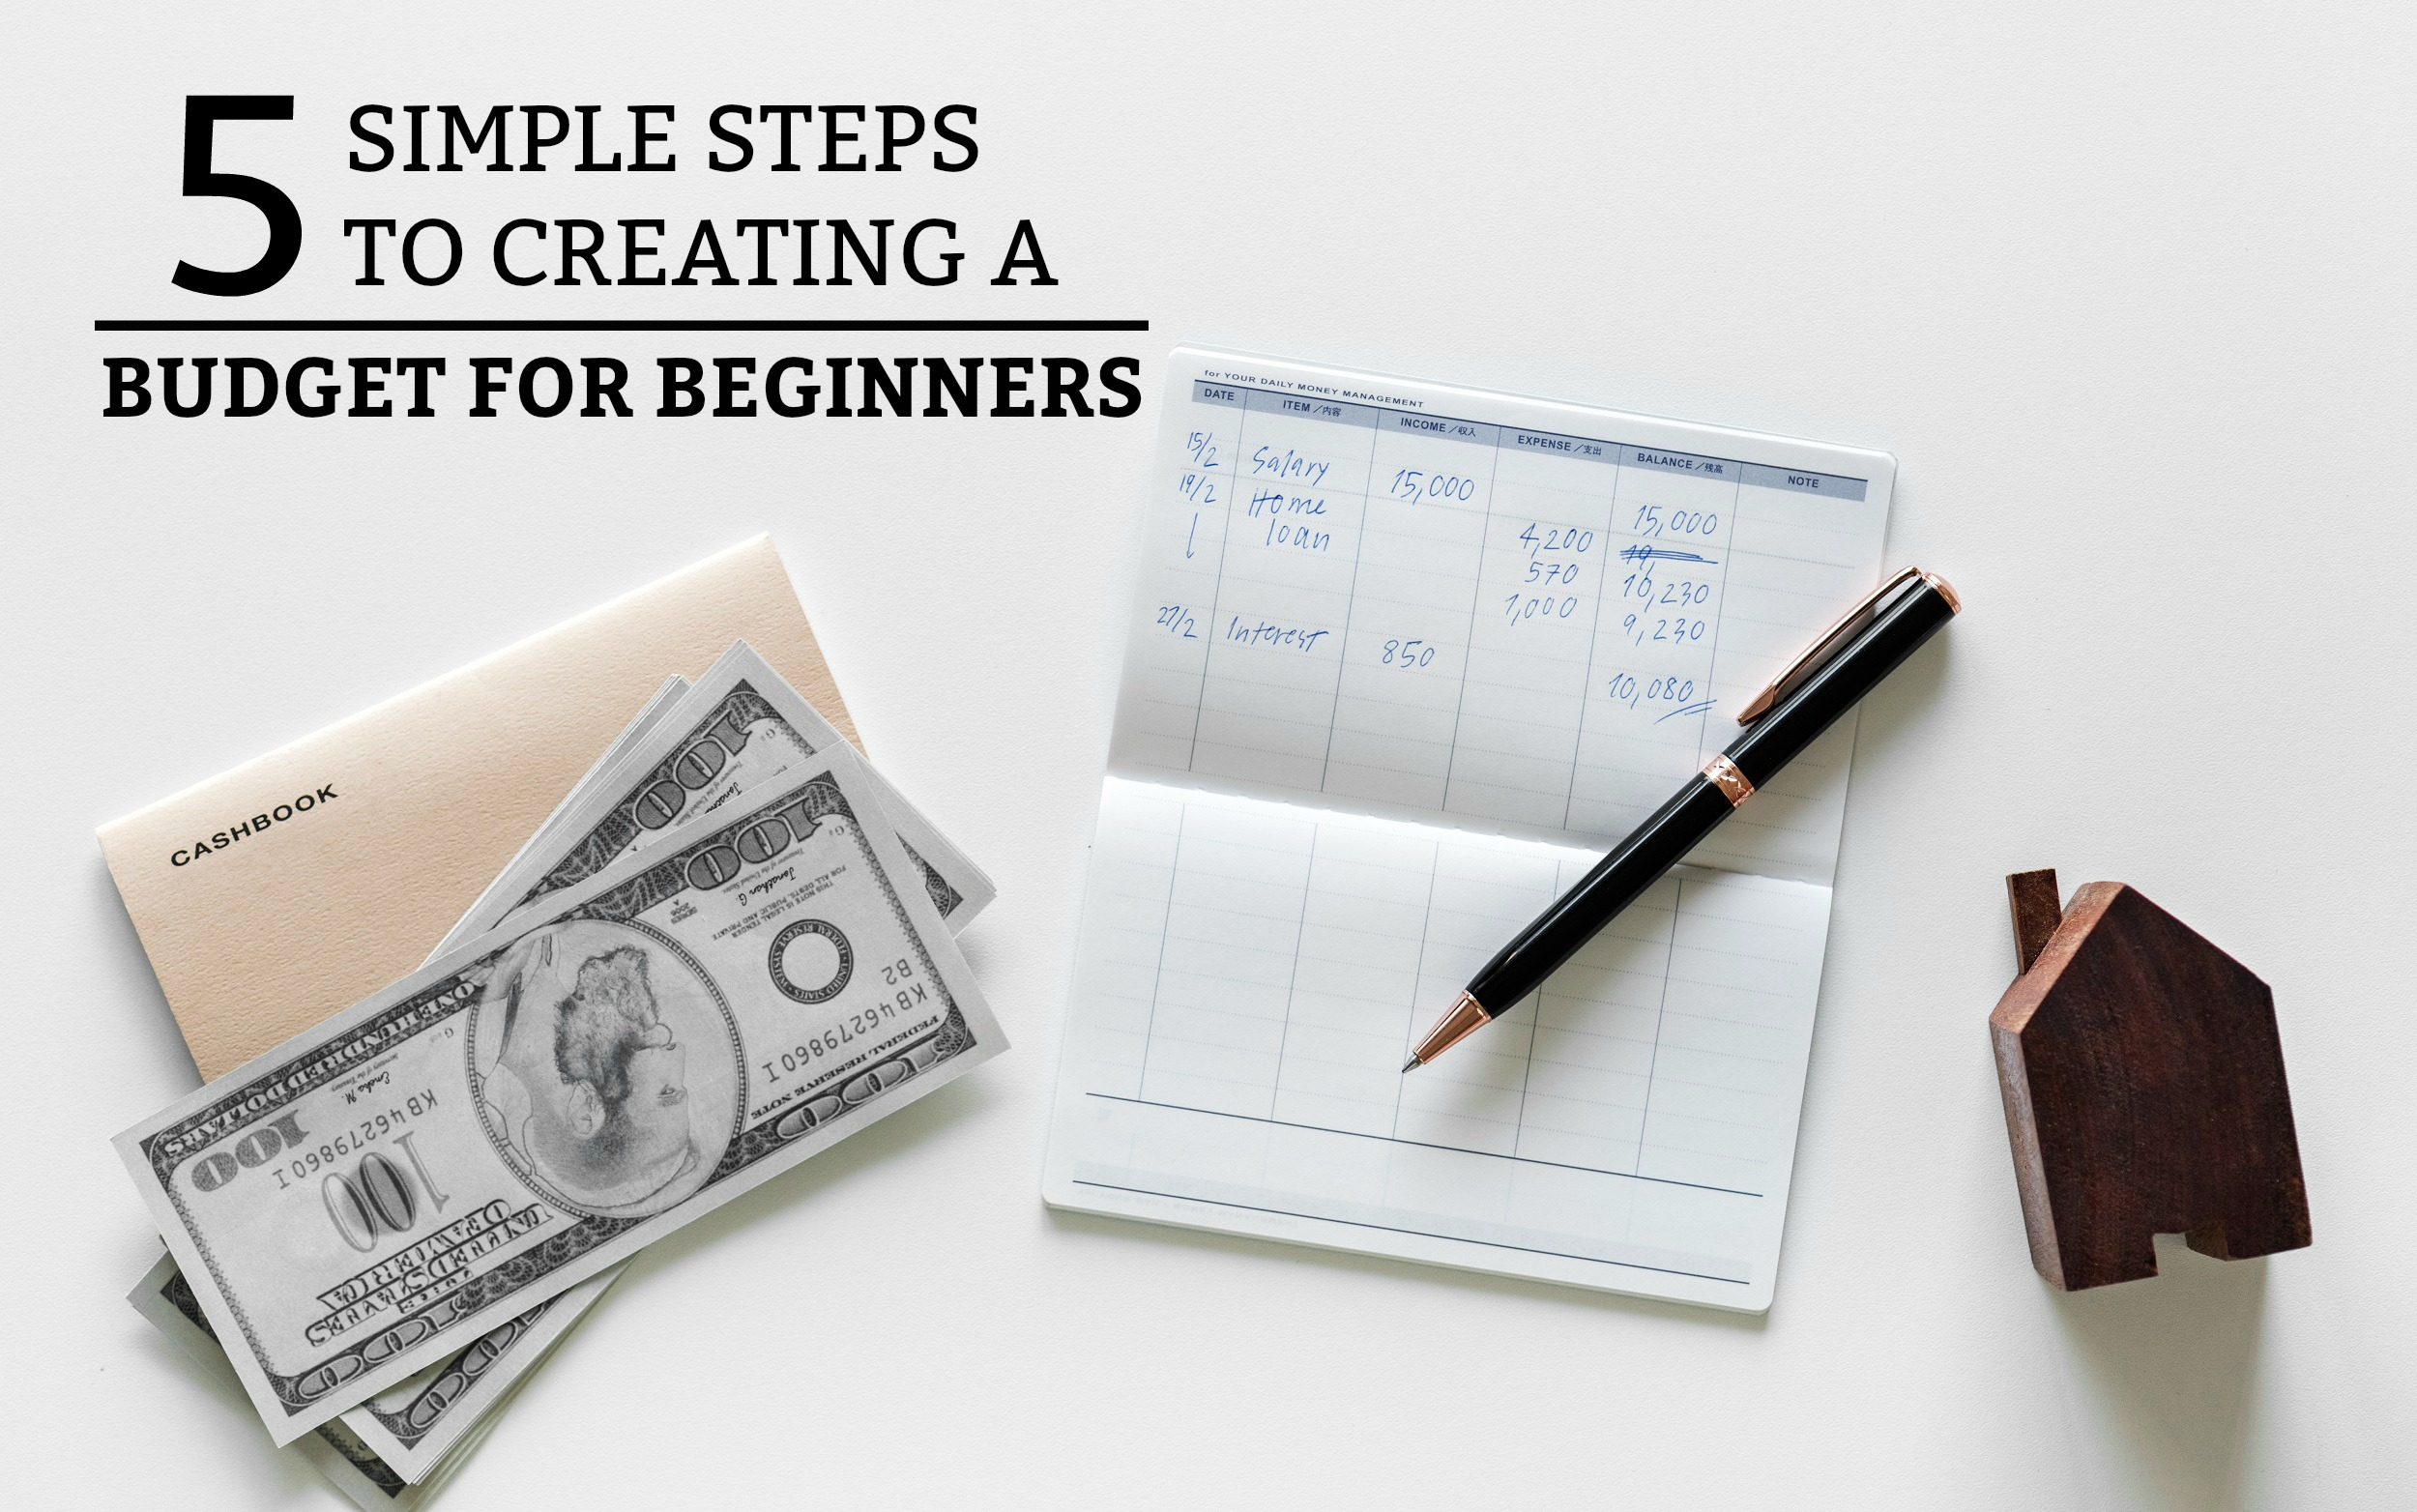 5 Simple Steps to Creating A Budget for Beginners - a practical guide on how to create a budget and take control of your spending! www.tradingaverage.com